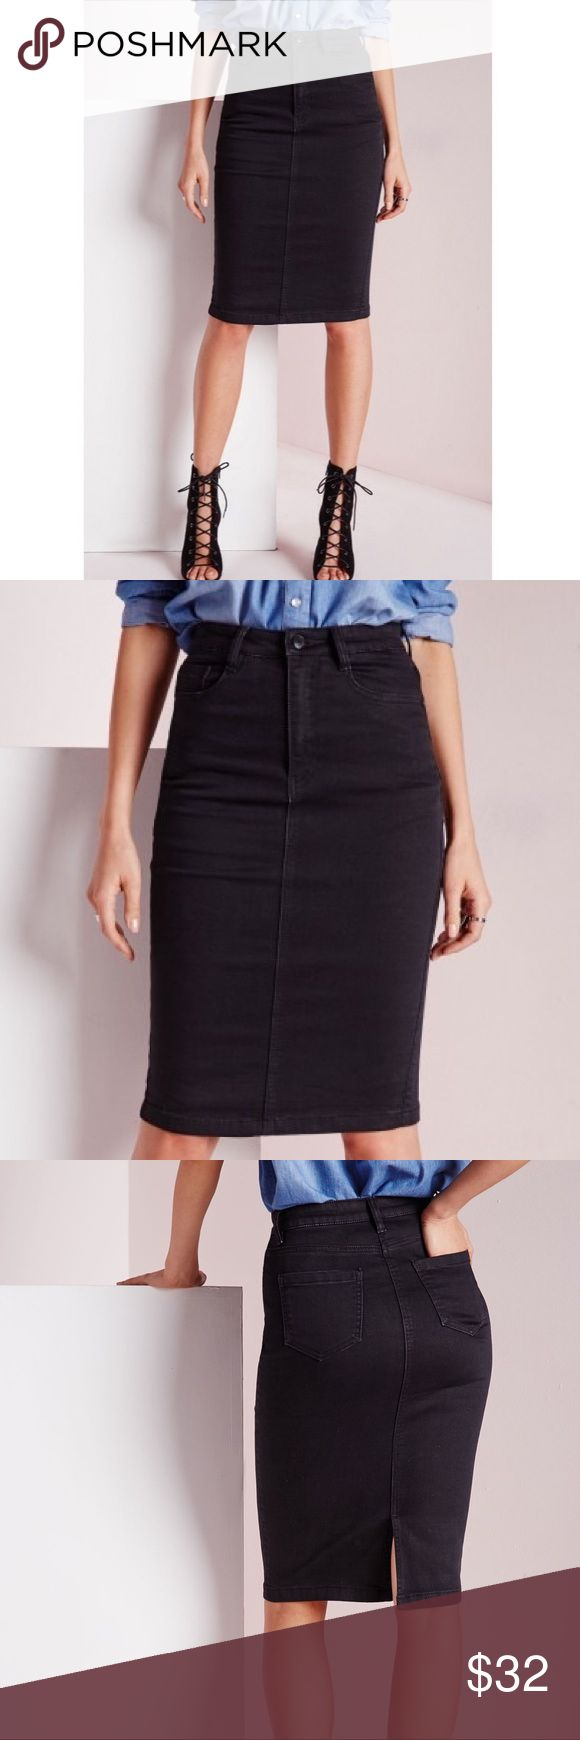 Denim Pencil Skirt Zara basic midi denim skirt. This skirt is in an always on trend chocolate wash. This piece is perfect to add to your wardrobe and will go with just about anything. Team up with a standout bodysuit and a killer pair of barely there heels for a casual cool finish. Very dark brown High waisted jean skirt Size  X Small never been worn. Zara Skirts Midi